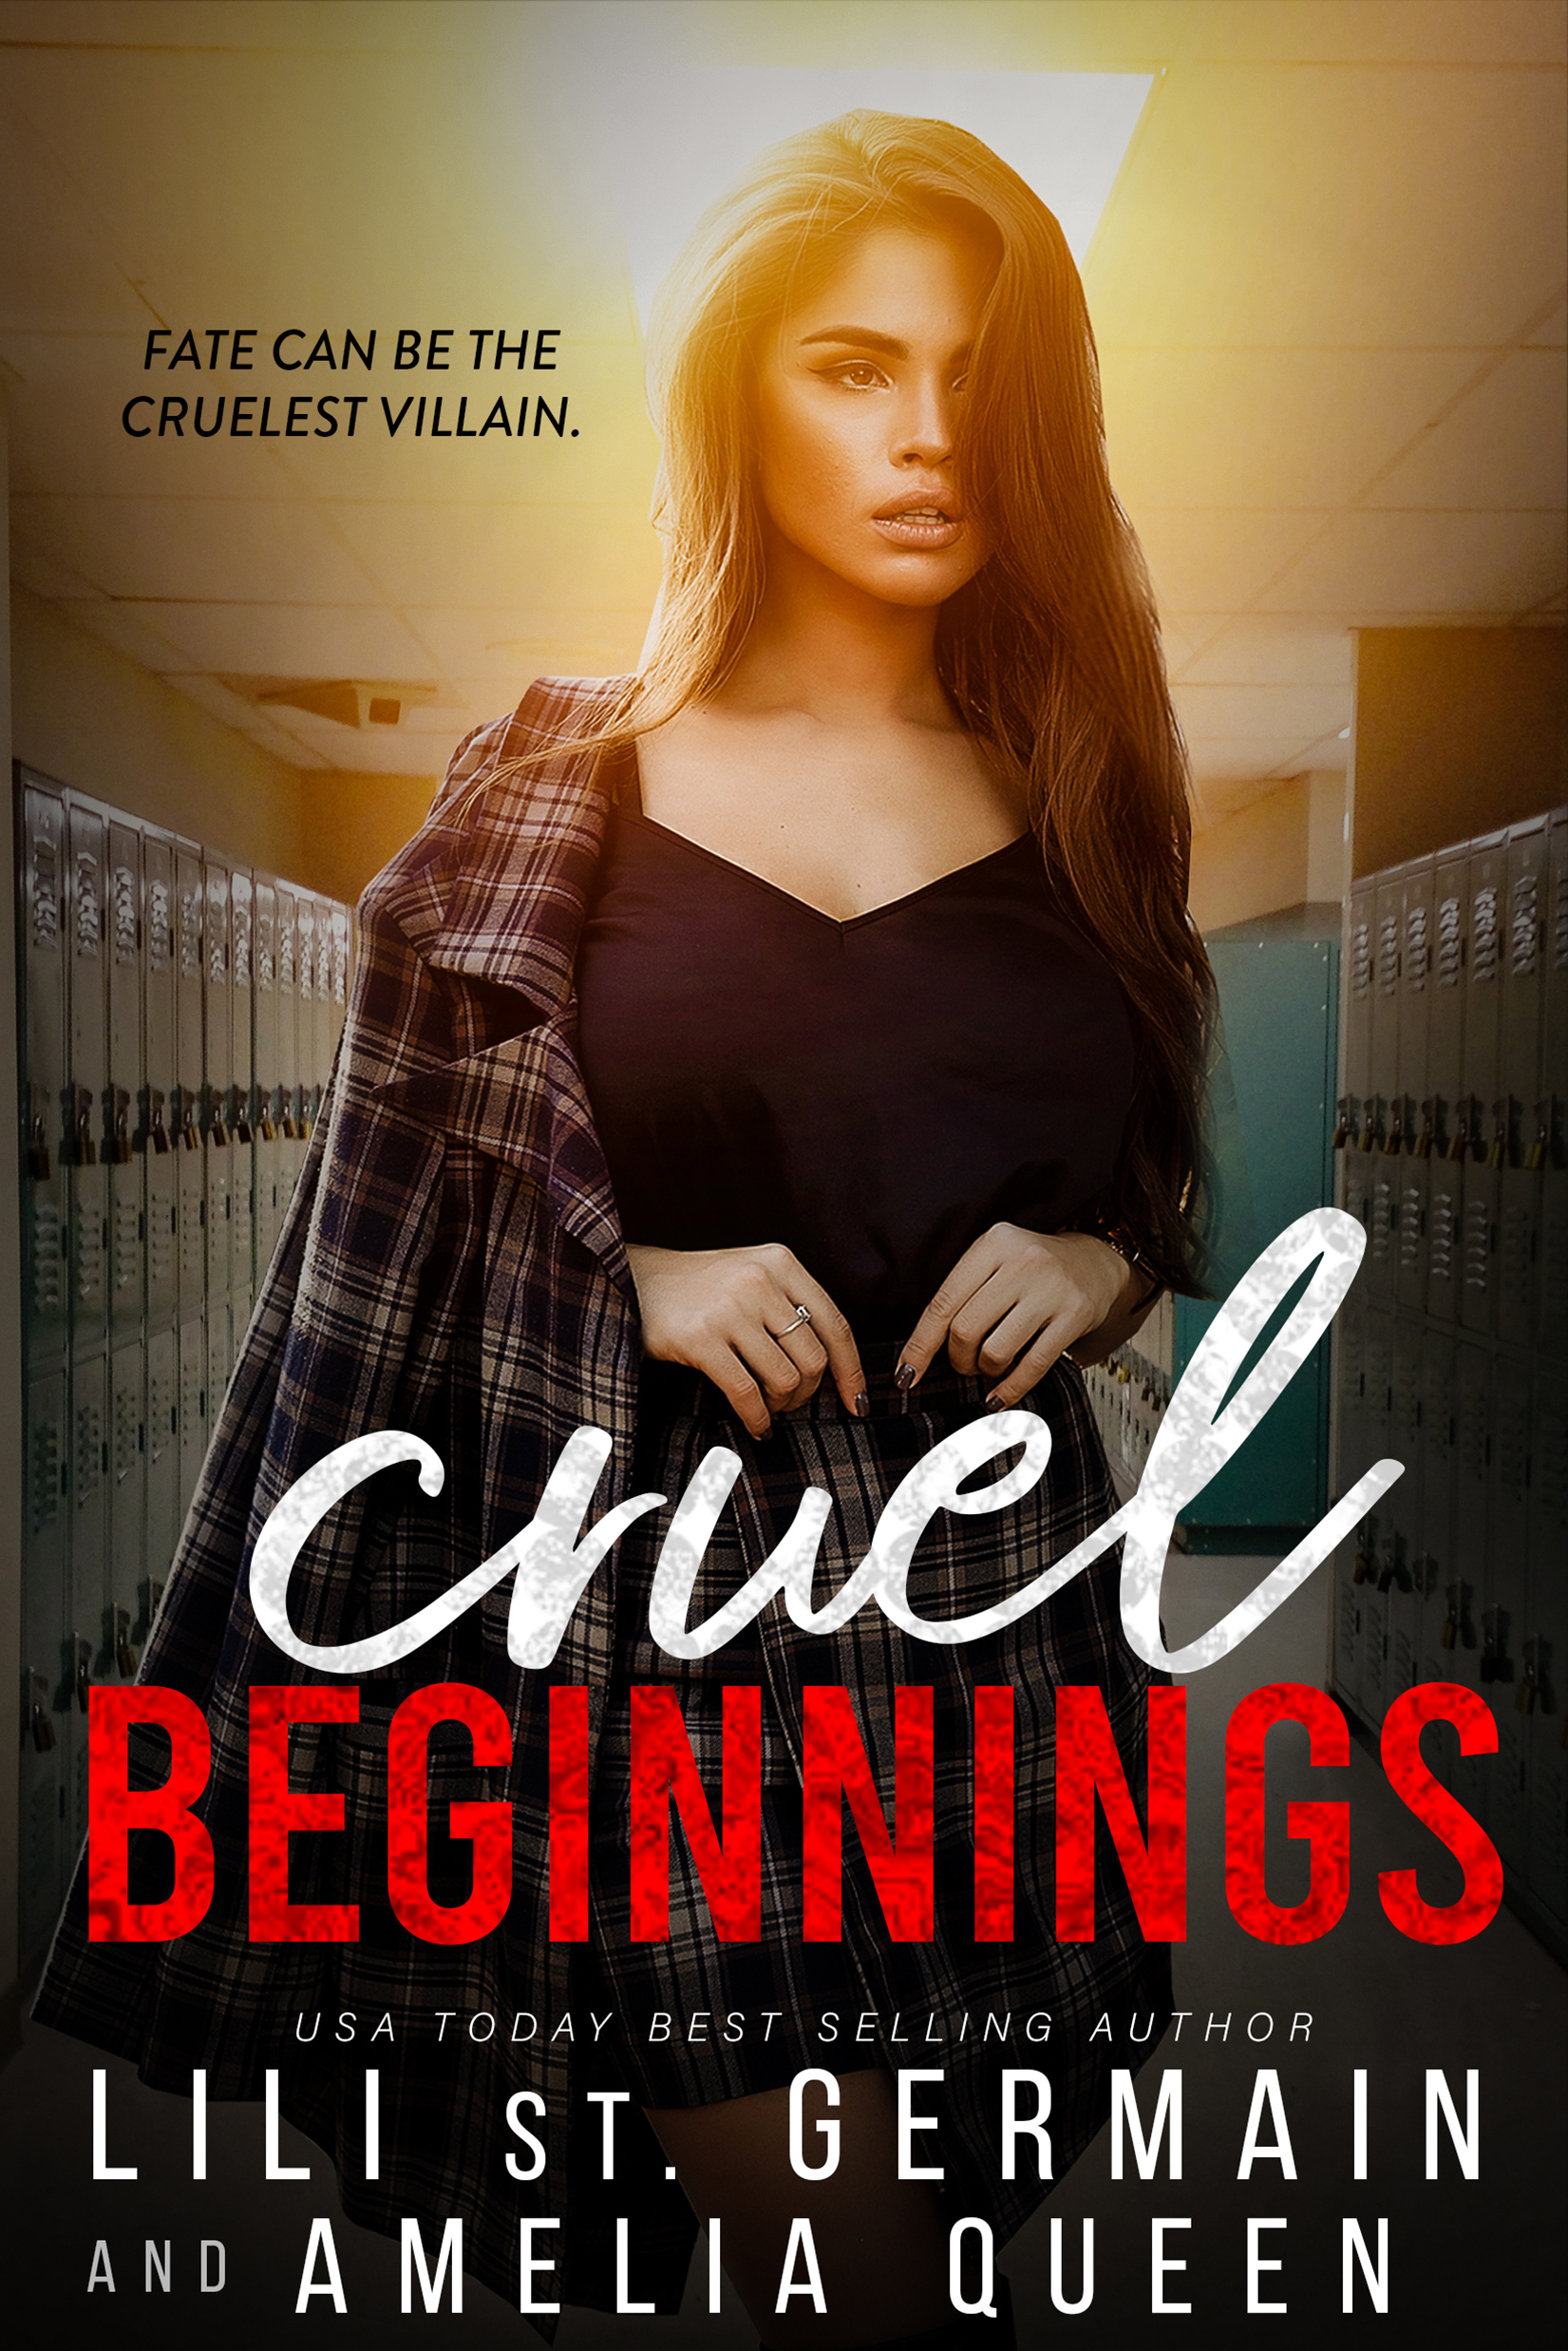 cruelbeginnings-finalebook.jpg